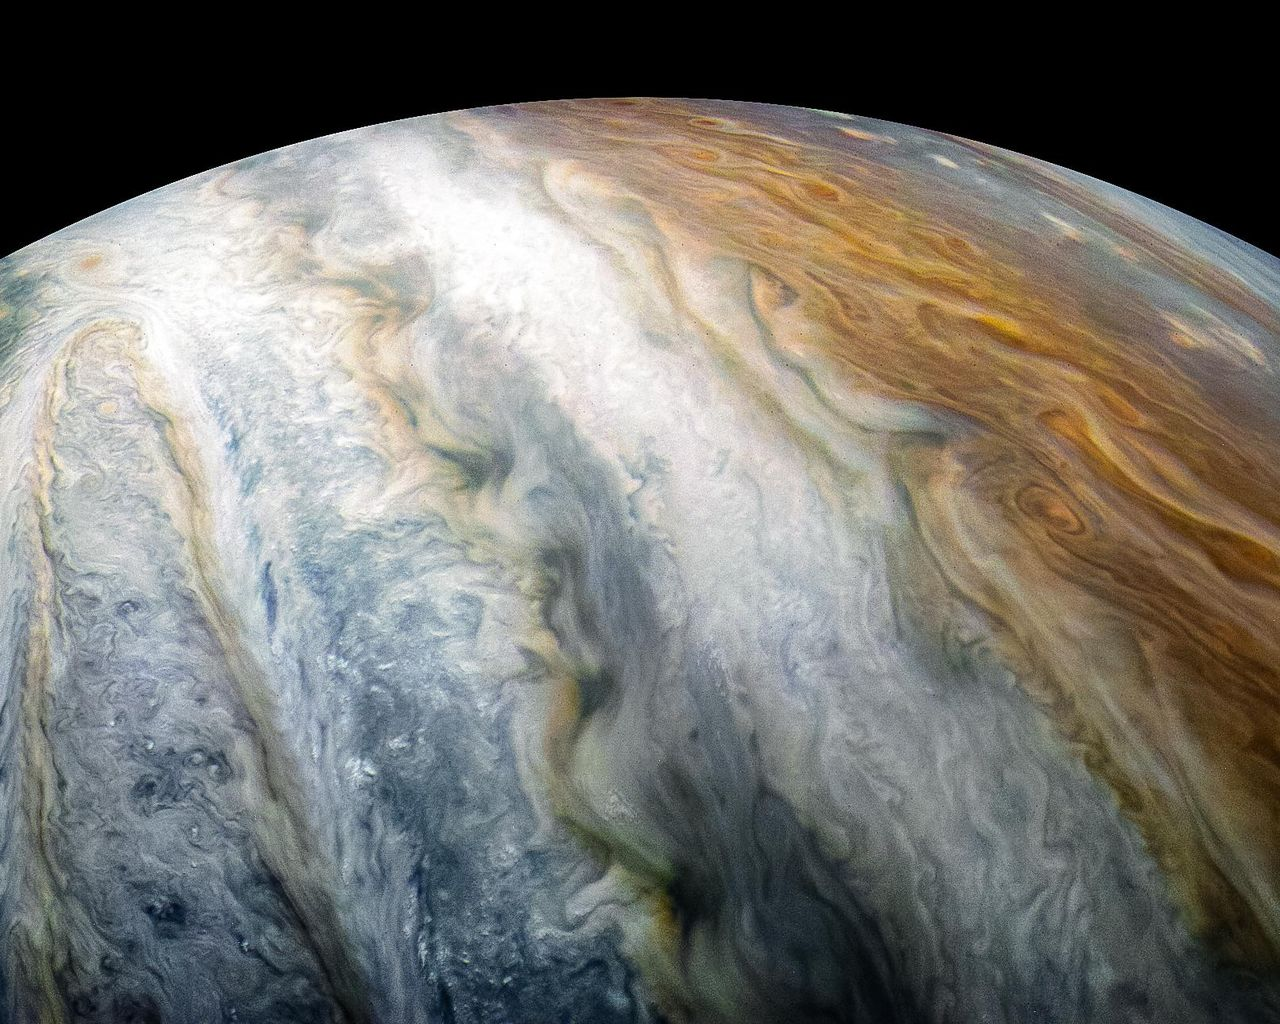 Jupiter Southern Hemisphere Cloud Belt Swirls